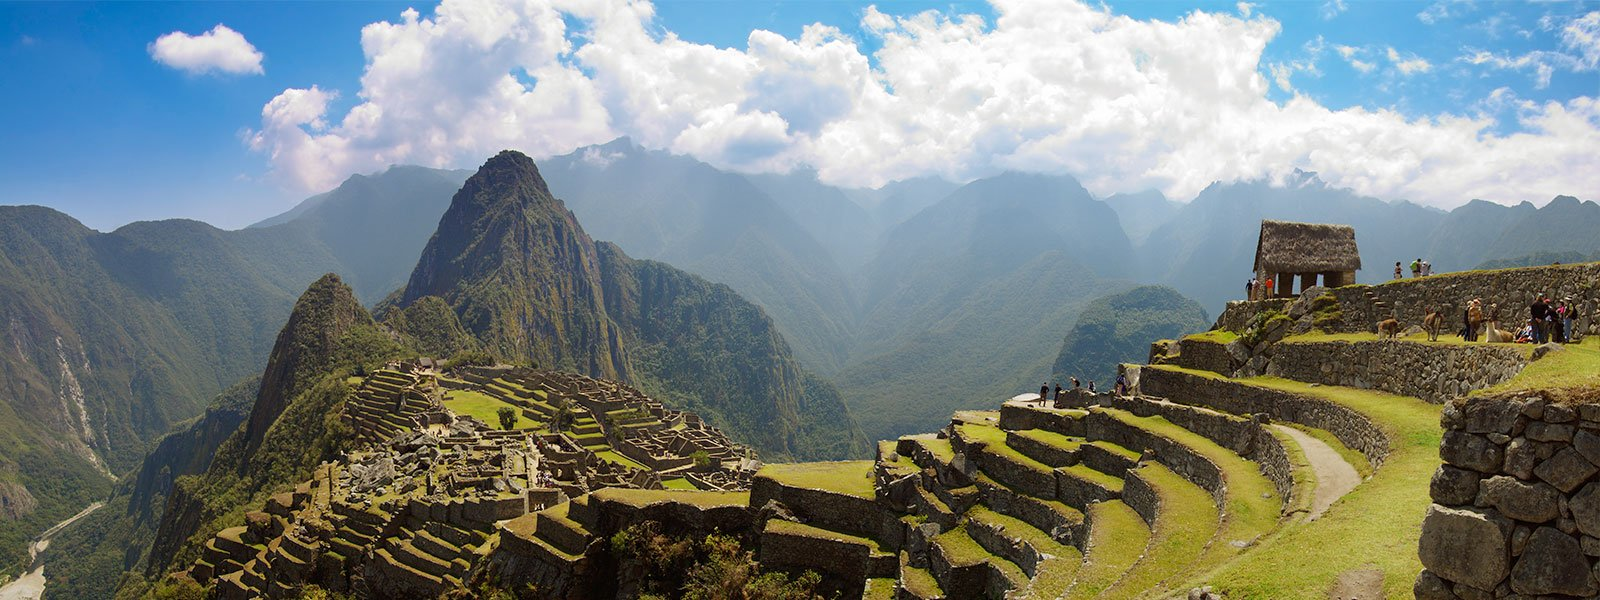 Don't want to hike? Visit Machu Picchu by Train